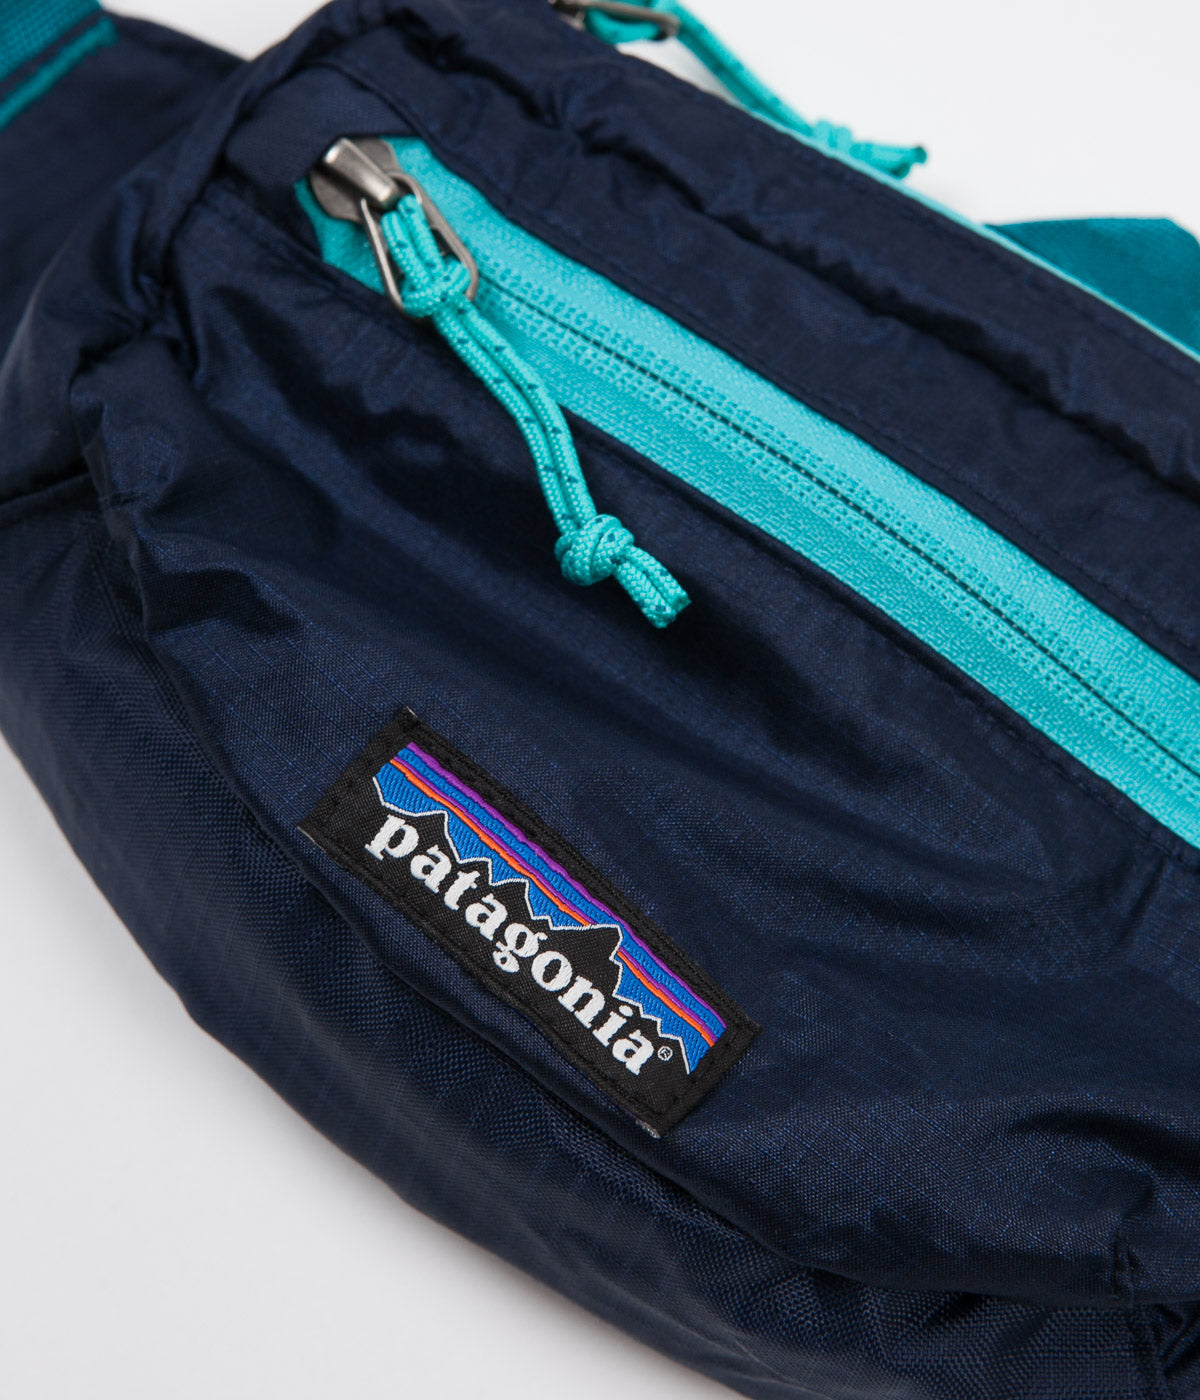 Patagonia Lightweight Travel Mini Hip Pack - Navy Blue